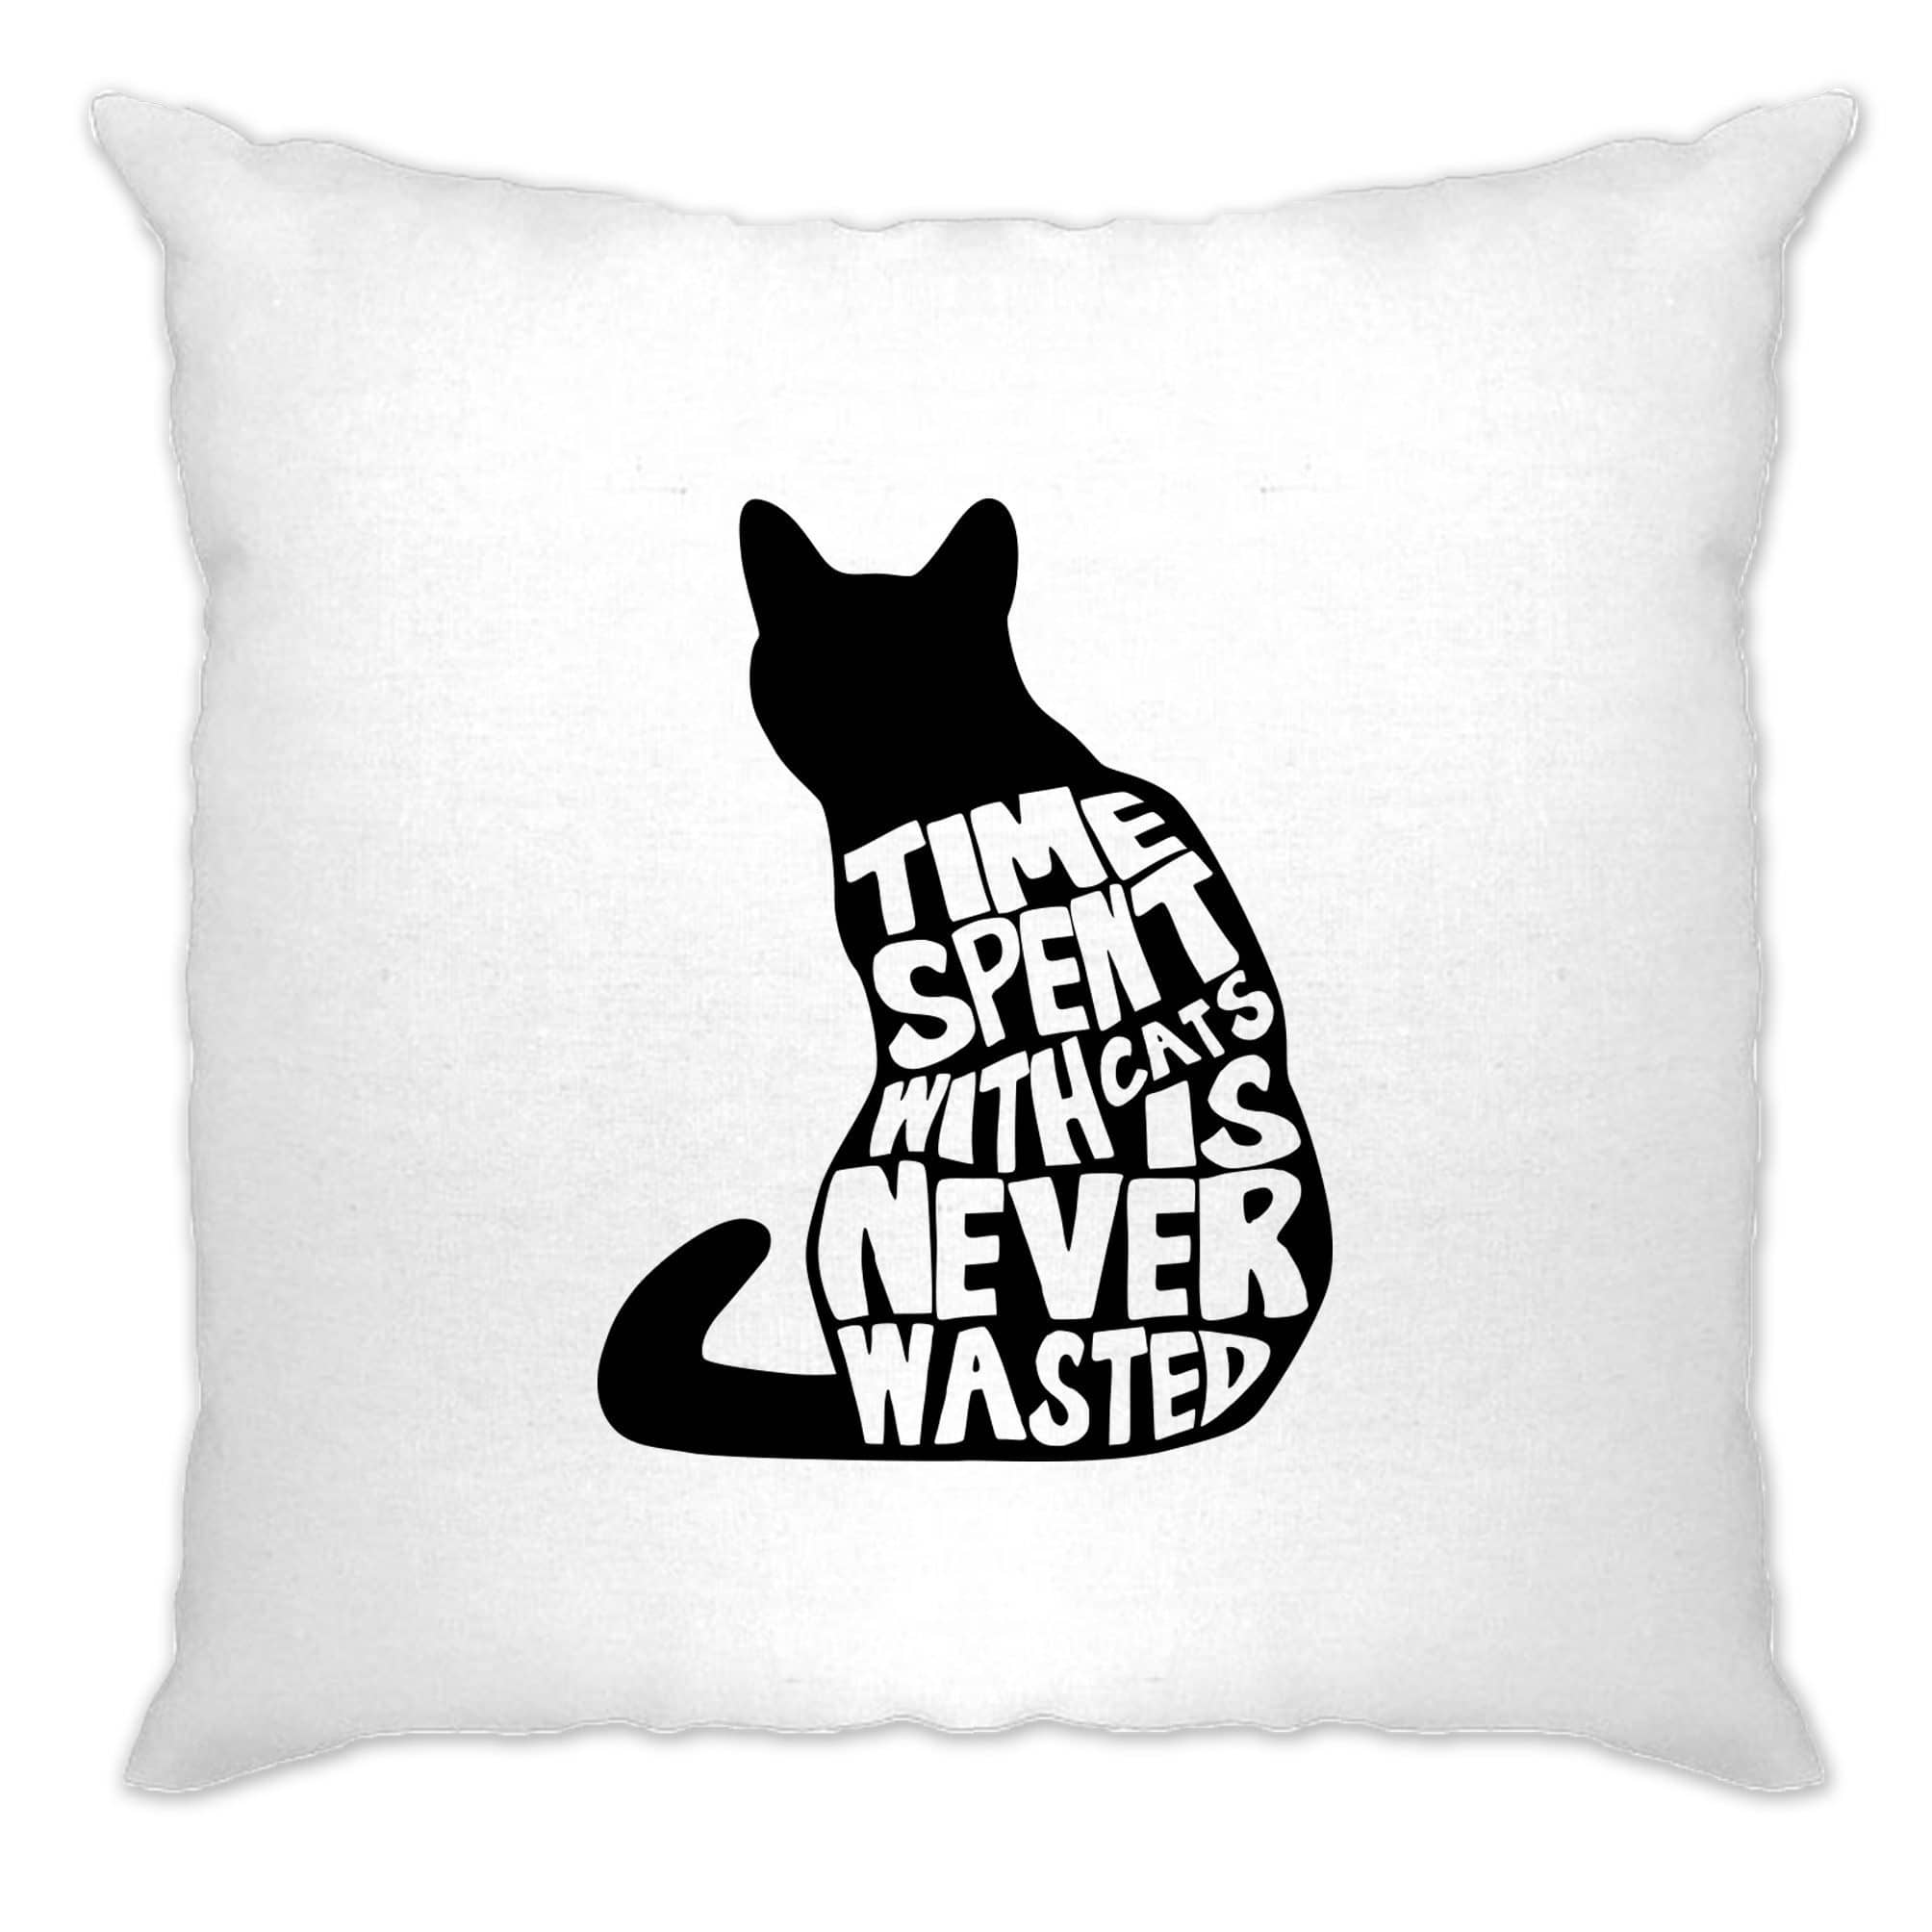 Cat Lover Cushion Cover Time Spent With Cats is Never Wasted